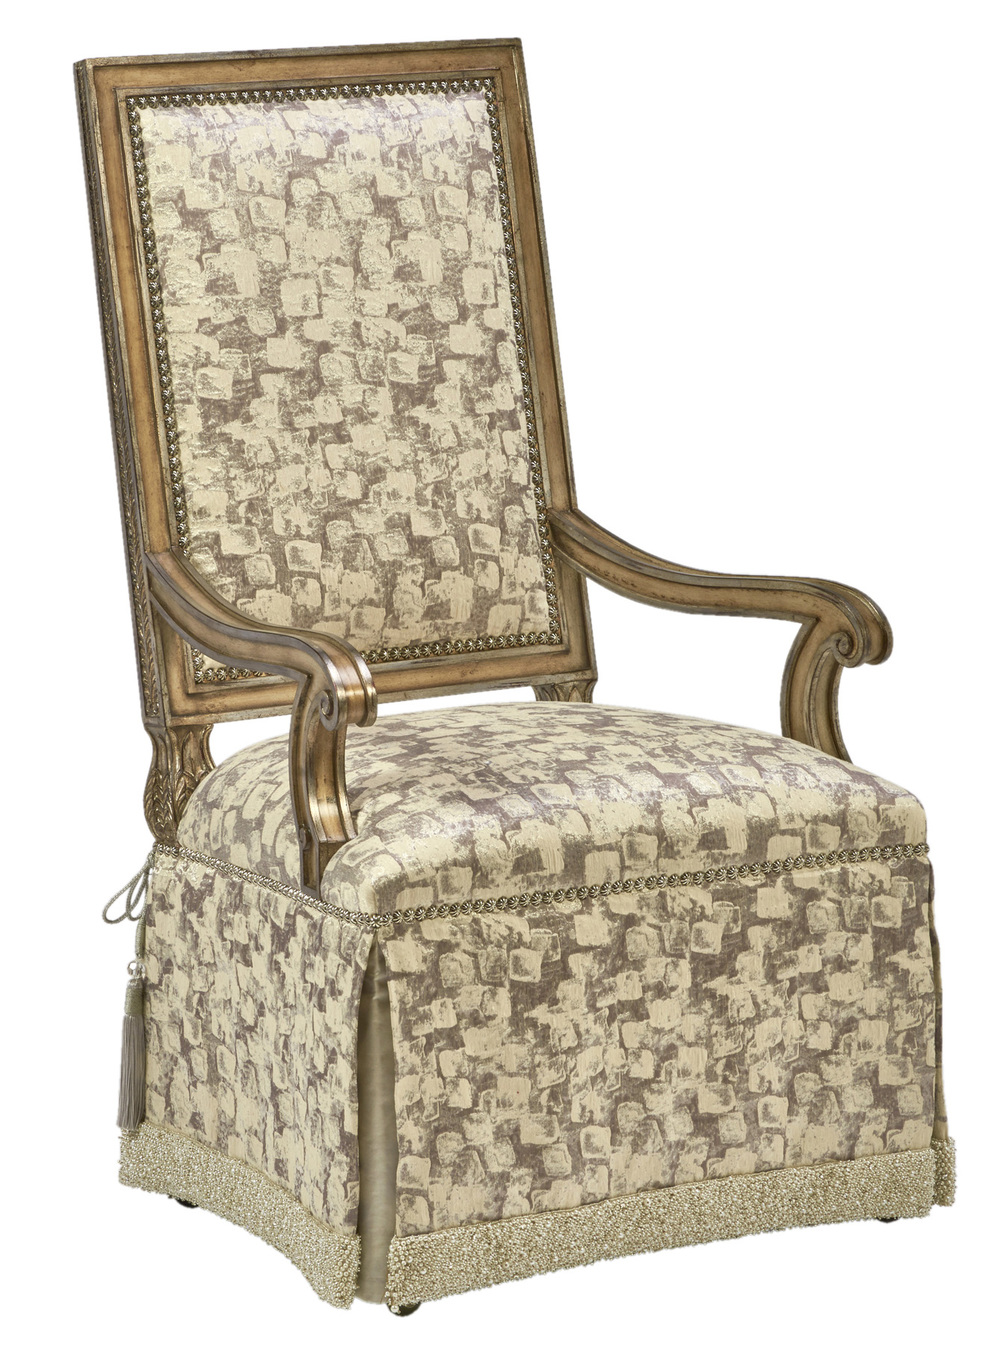 Marge Carson - Grand Traditions Arm Chair